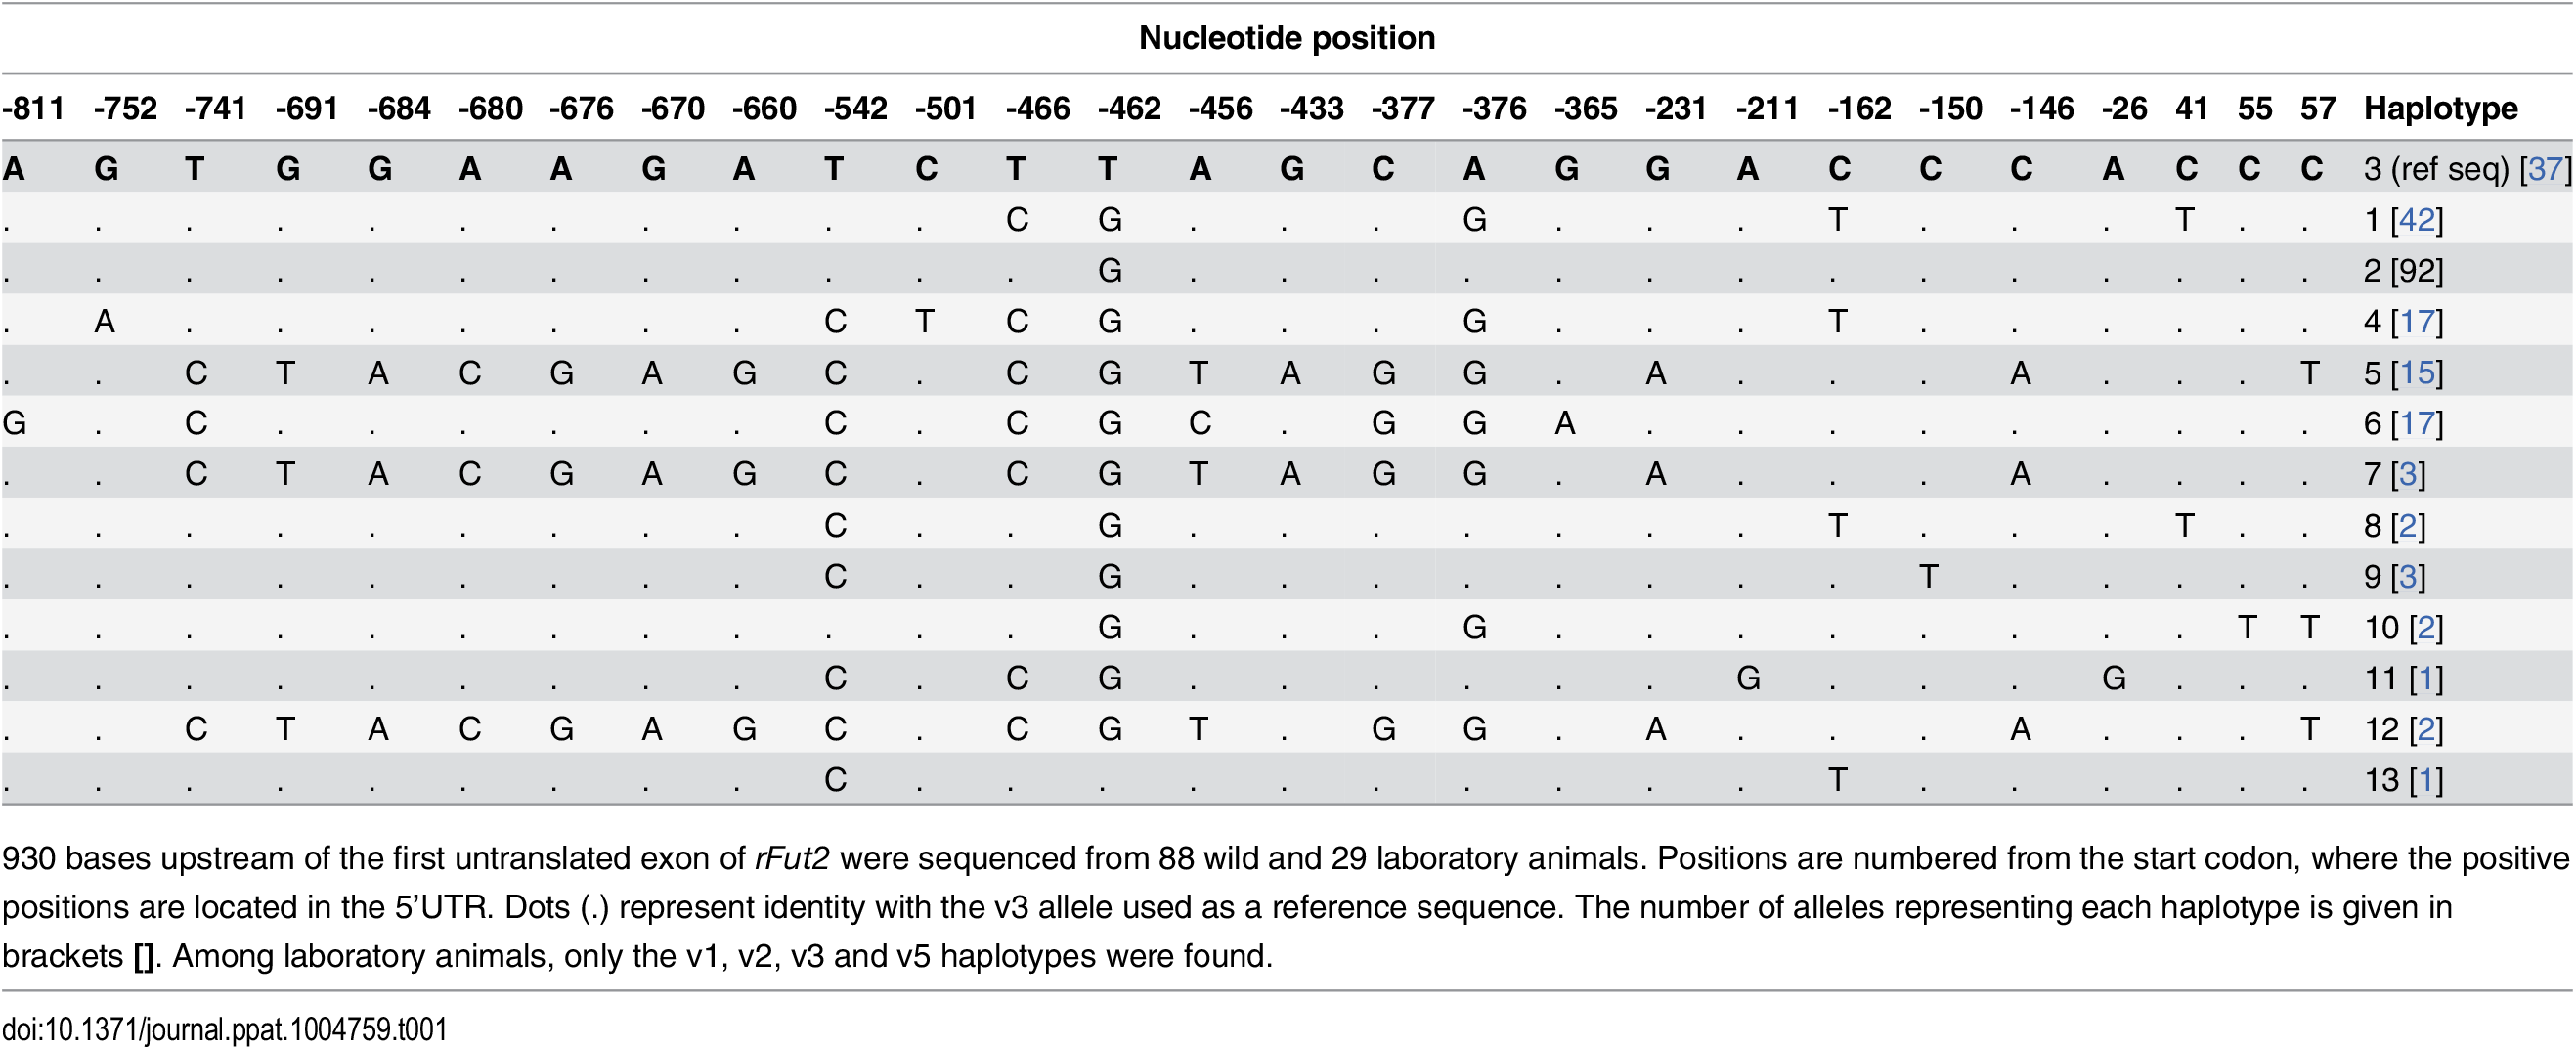 Nucleotide variation found in French wild and laboratory animals in the putative promoter region of rFut2 and inferred haplotypes.